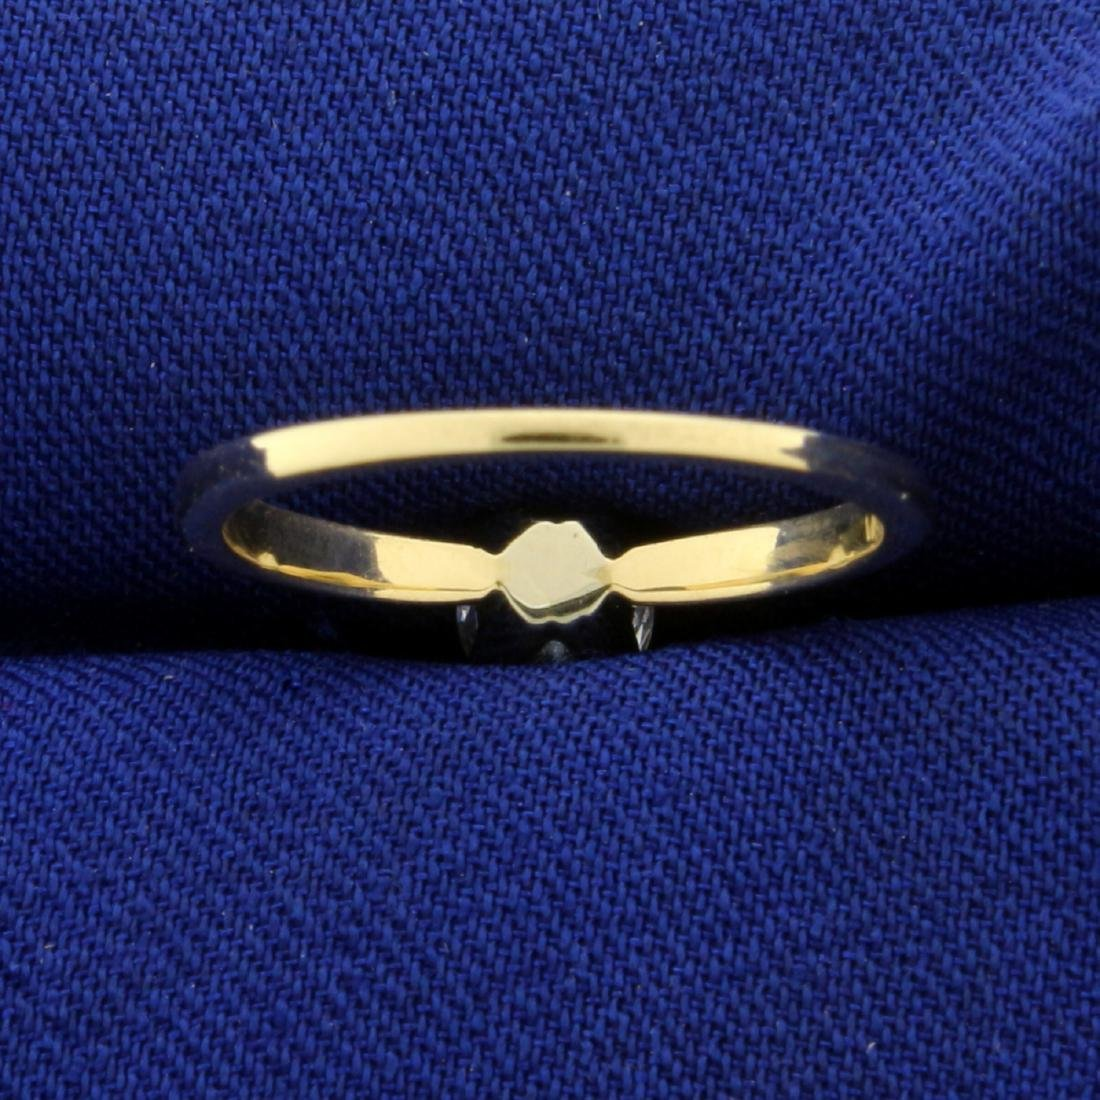 1/2ct Solitaire CZ Engagement Ring in 14K Yellow Gold - 4